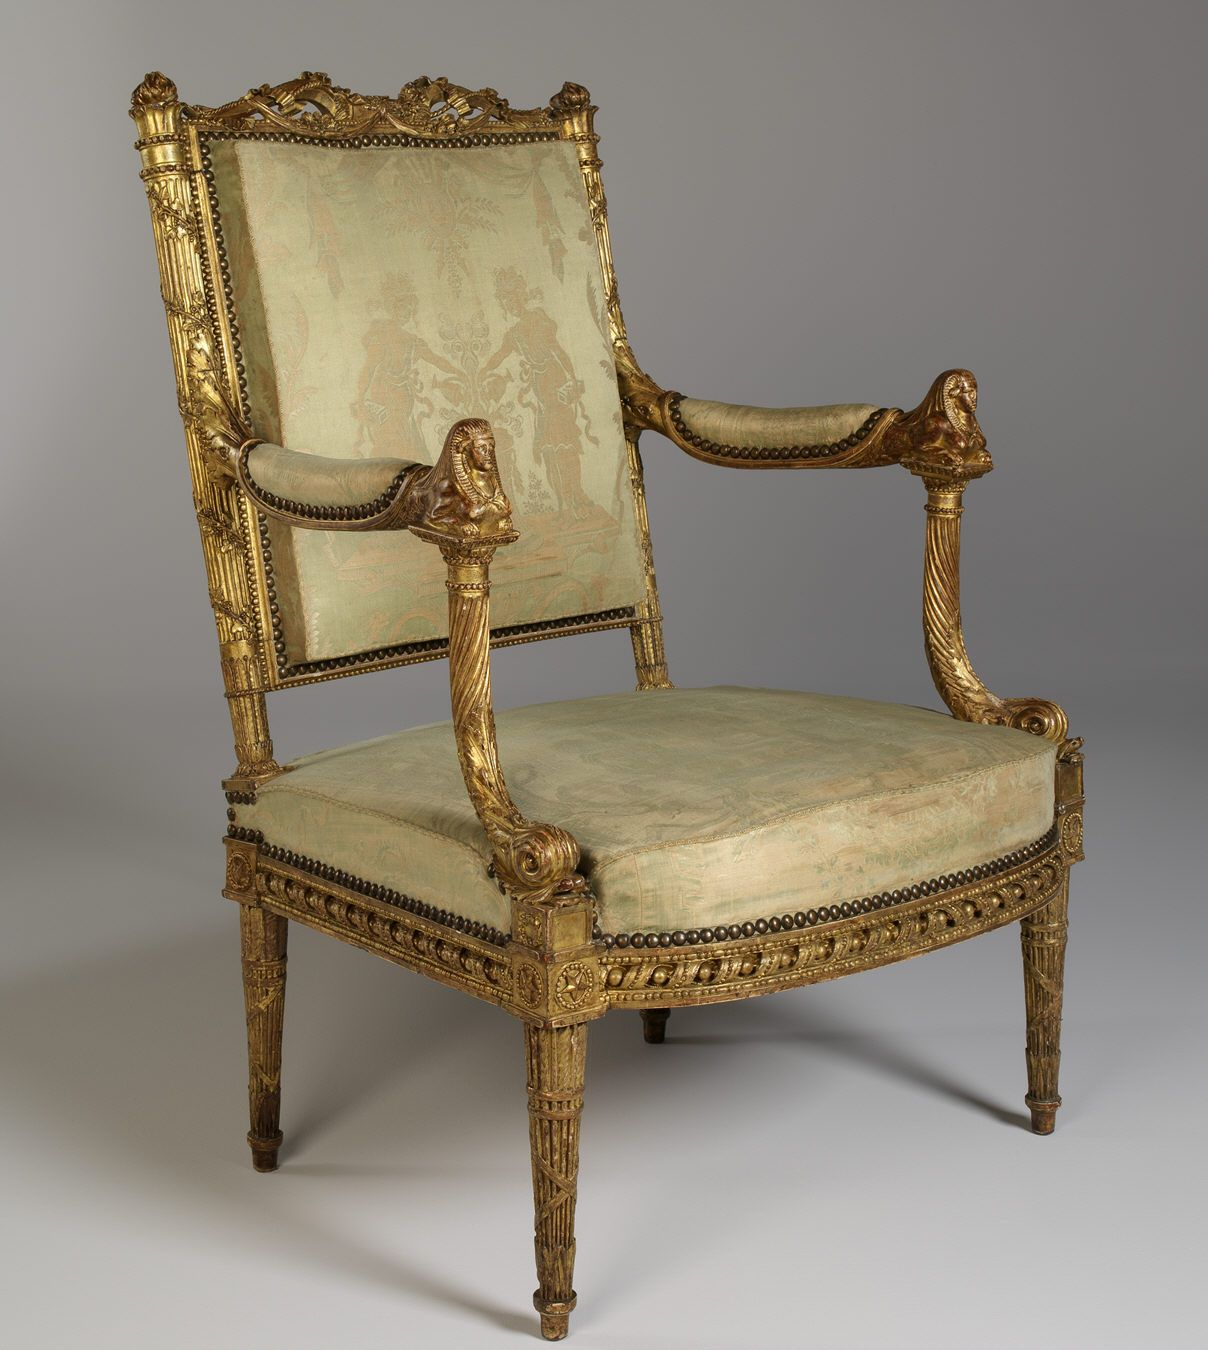 Museu Gulbenkian Fauteuil Louis Xvi Georges Jacob 1785 86  # Thomas Hope Muebles